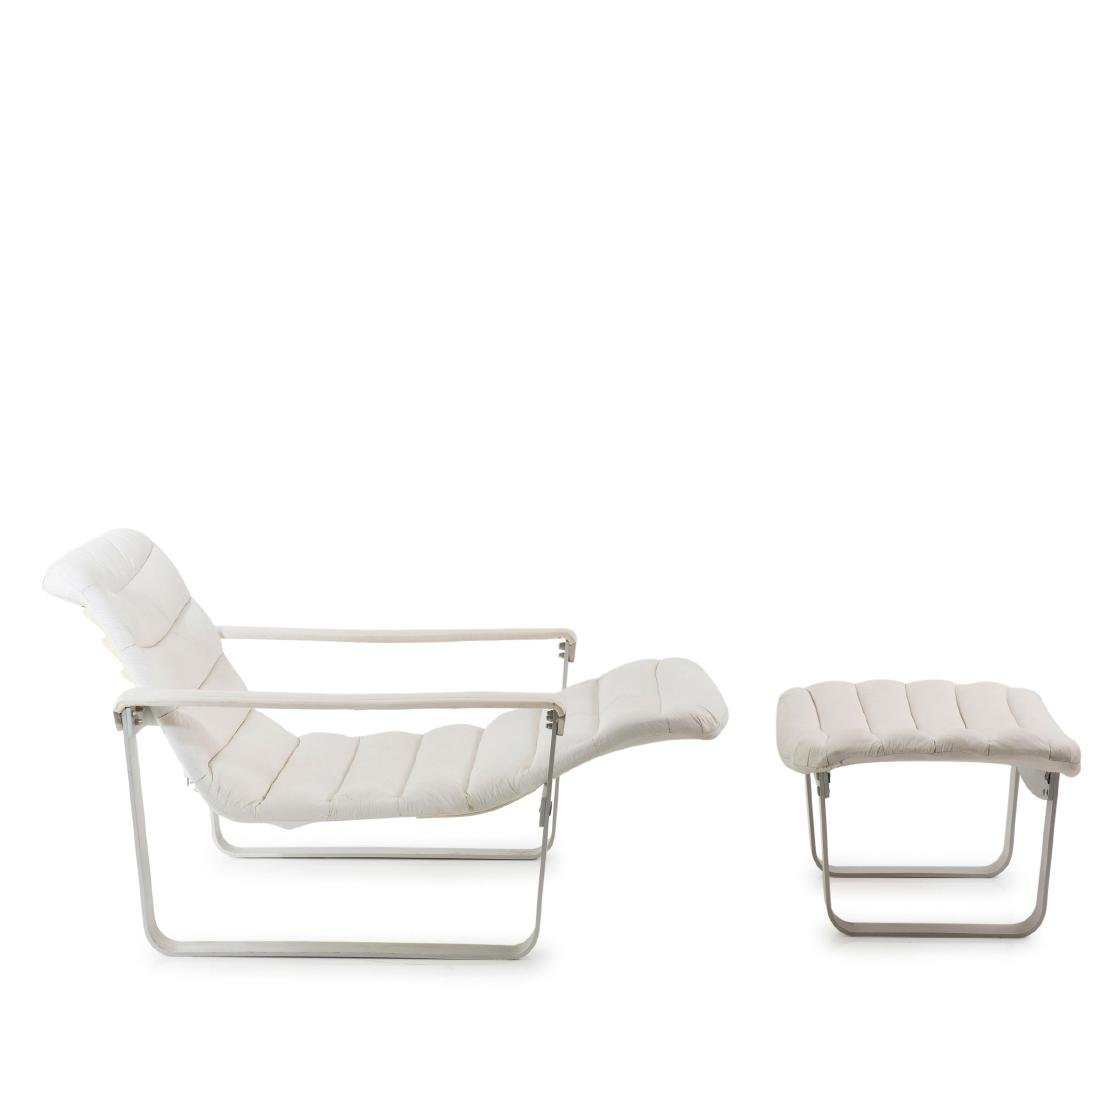 'Metal - pullka' easy chair with ottoman, 1968